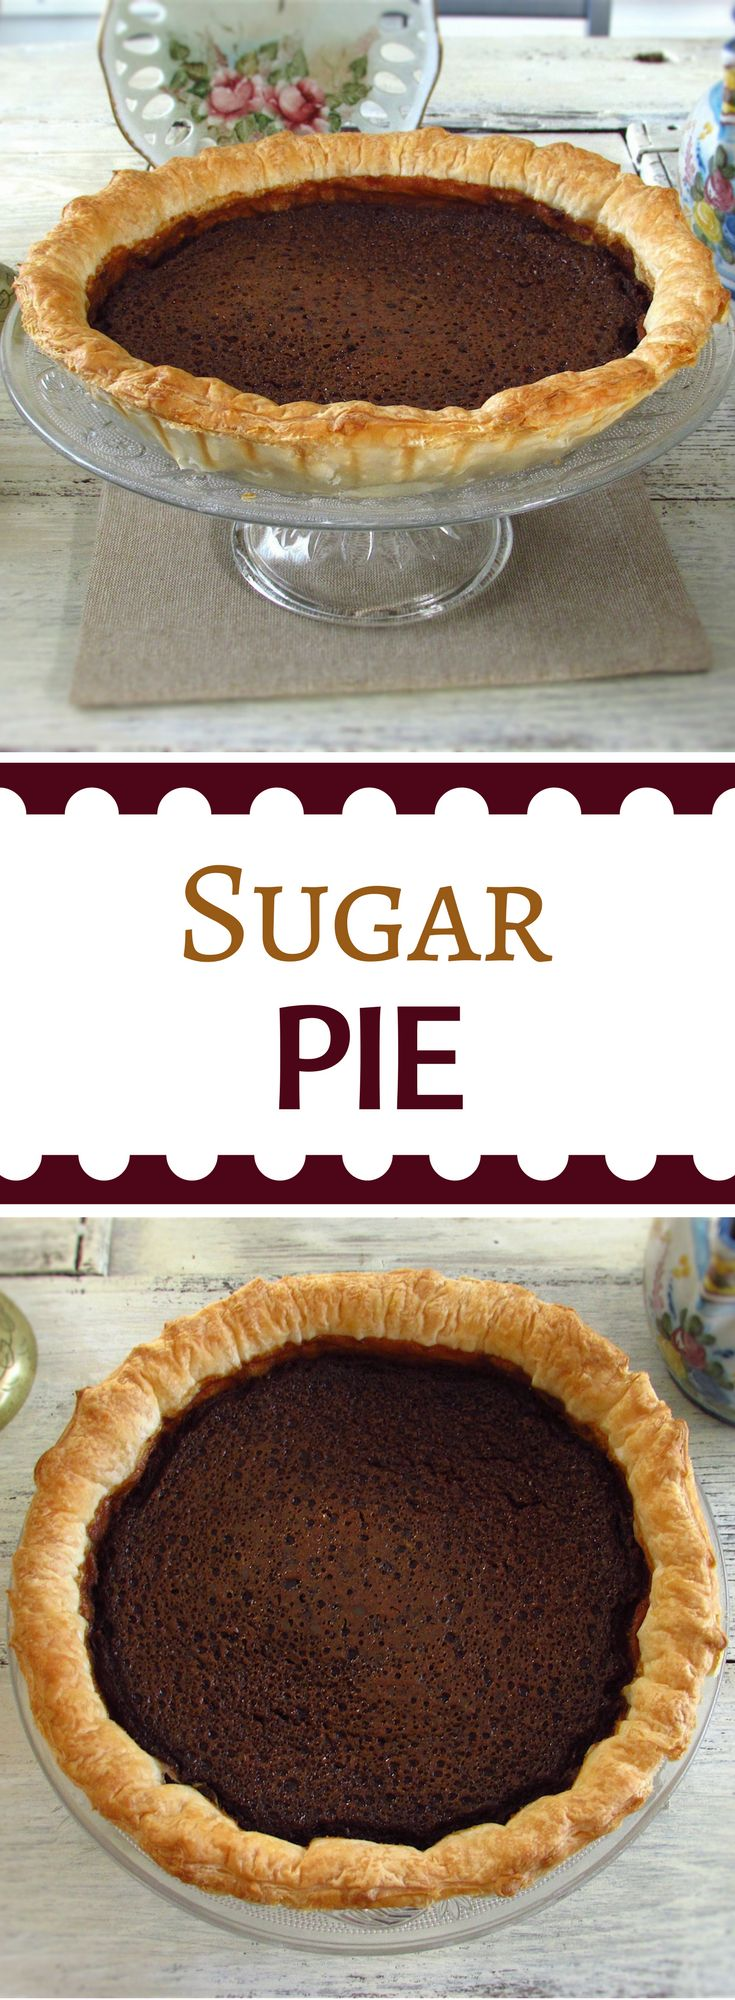 Sugar pie | Food From Portugal. An ideal dessert for a winter dinner with the special flavor of brown sugar. Add a scoop of vanilla ice cream… Mouth-watering… #recipe #pie #sugar